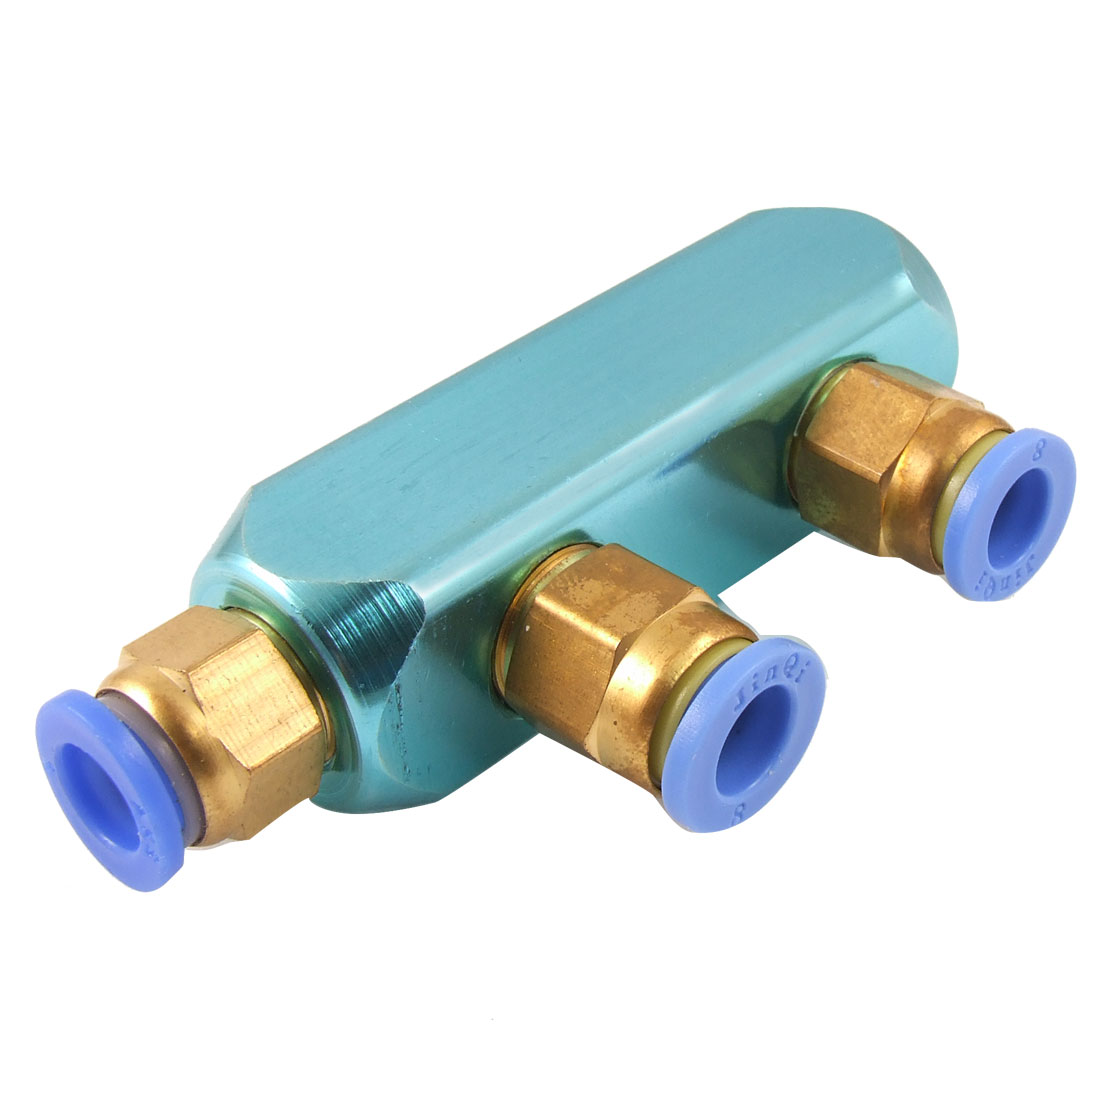 UXCELL 8Mm Pneumatic Air Hose Piping 3 Way One Touch Fittings Quick Coupler l duchen d 721 46 33 page 1